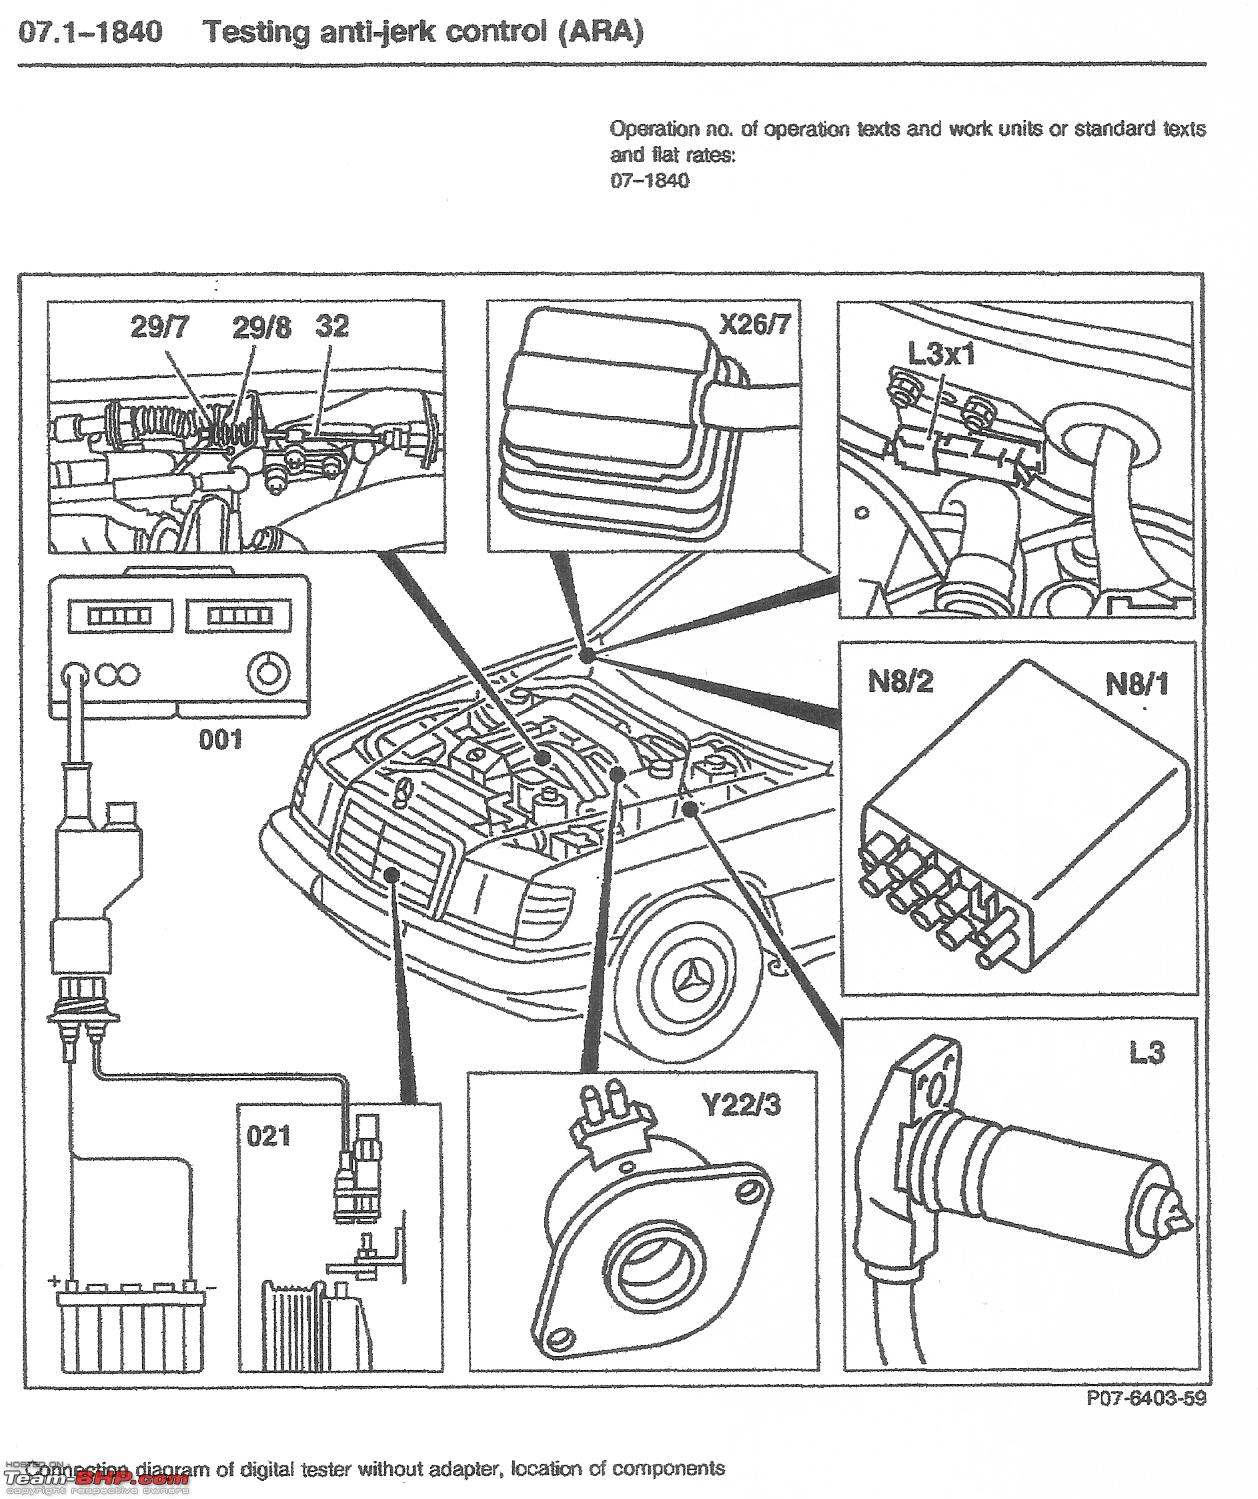 Mercedes Benz Engine Wiring Schematics Library W124 E Class Support Group Antijerk Control Ara